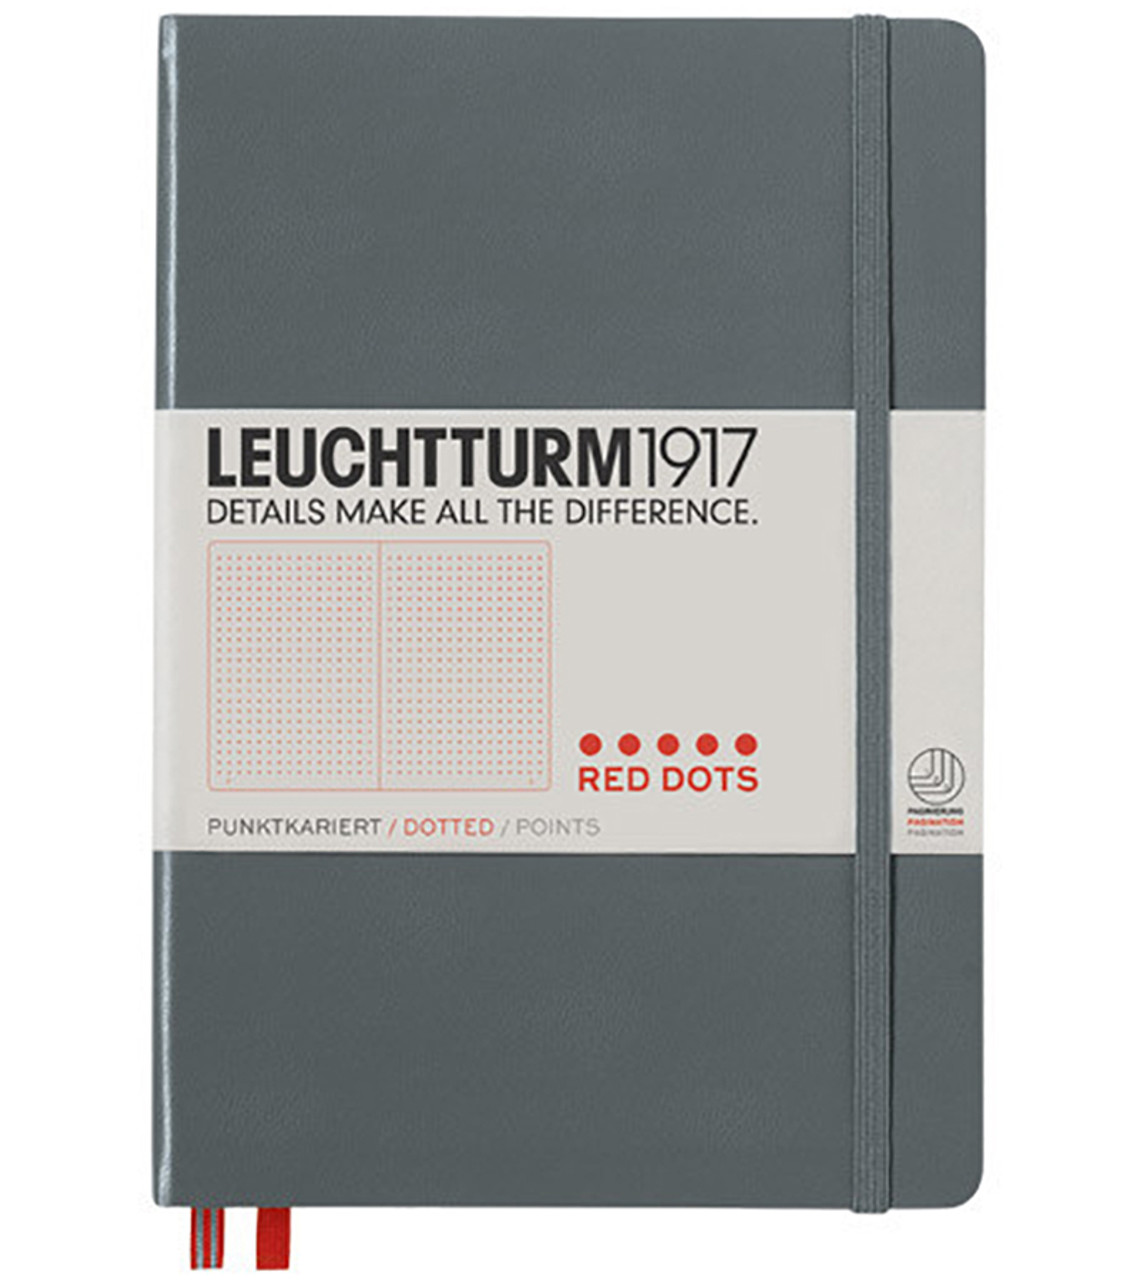 Leuchtturm1917 Red Dot Edition Anthracite